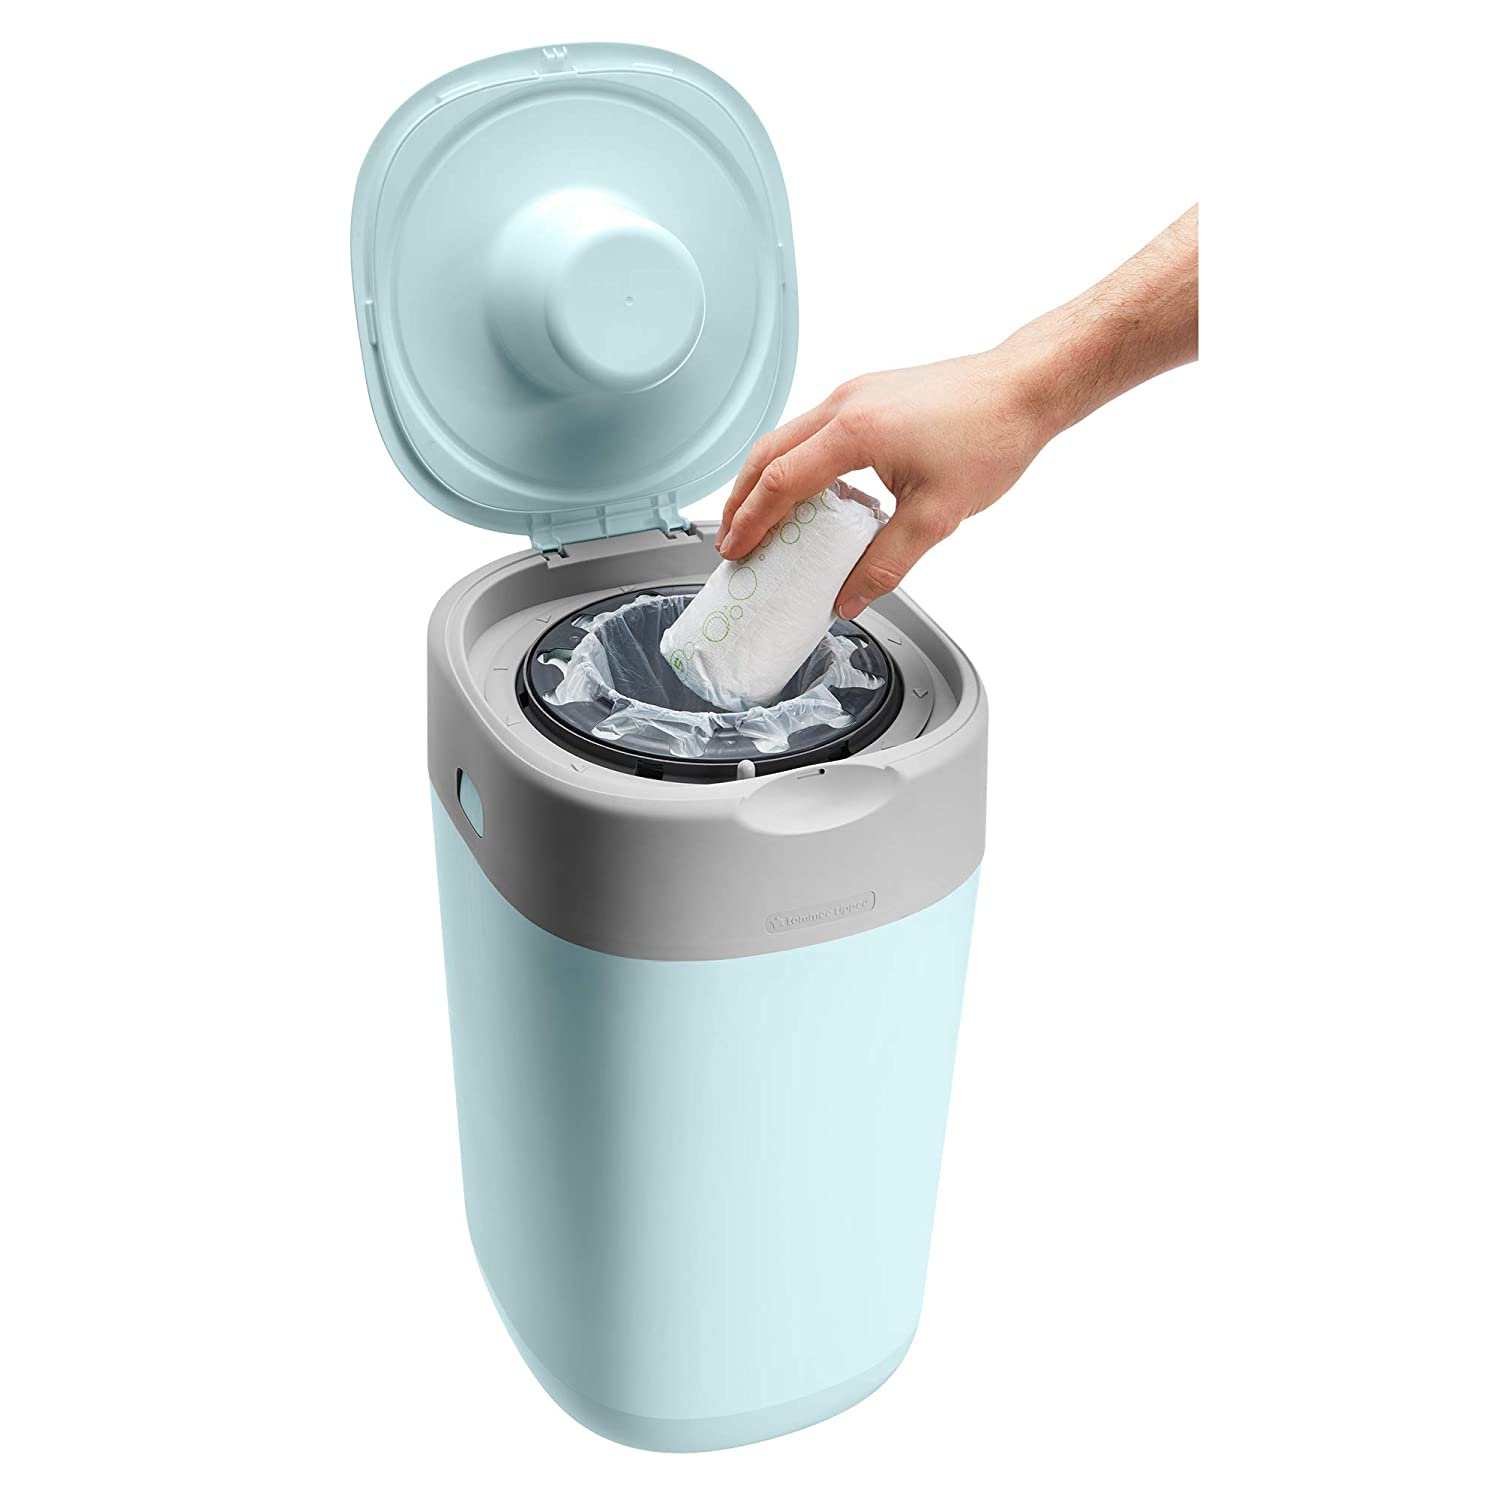 Nappy Disposal Sangenic Tec Refills Tommee Tippee Twist and Click Advanced Nappy Disposal Sangenic Tec Bin White Pack of 12